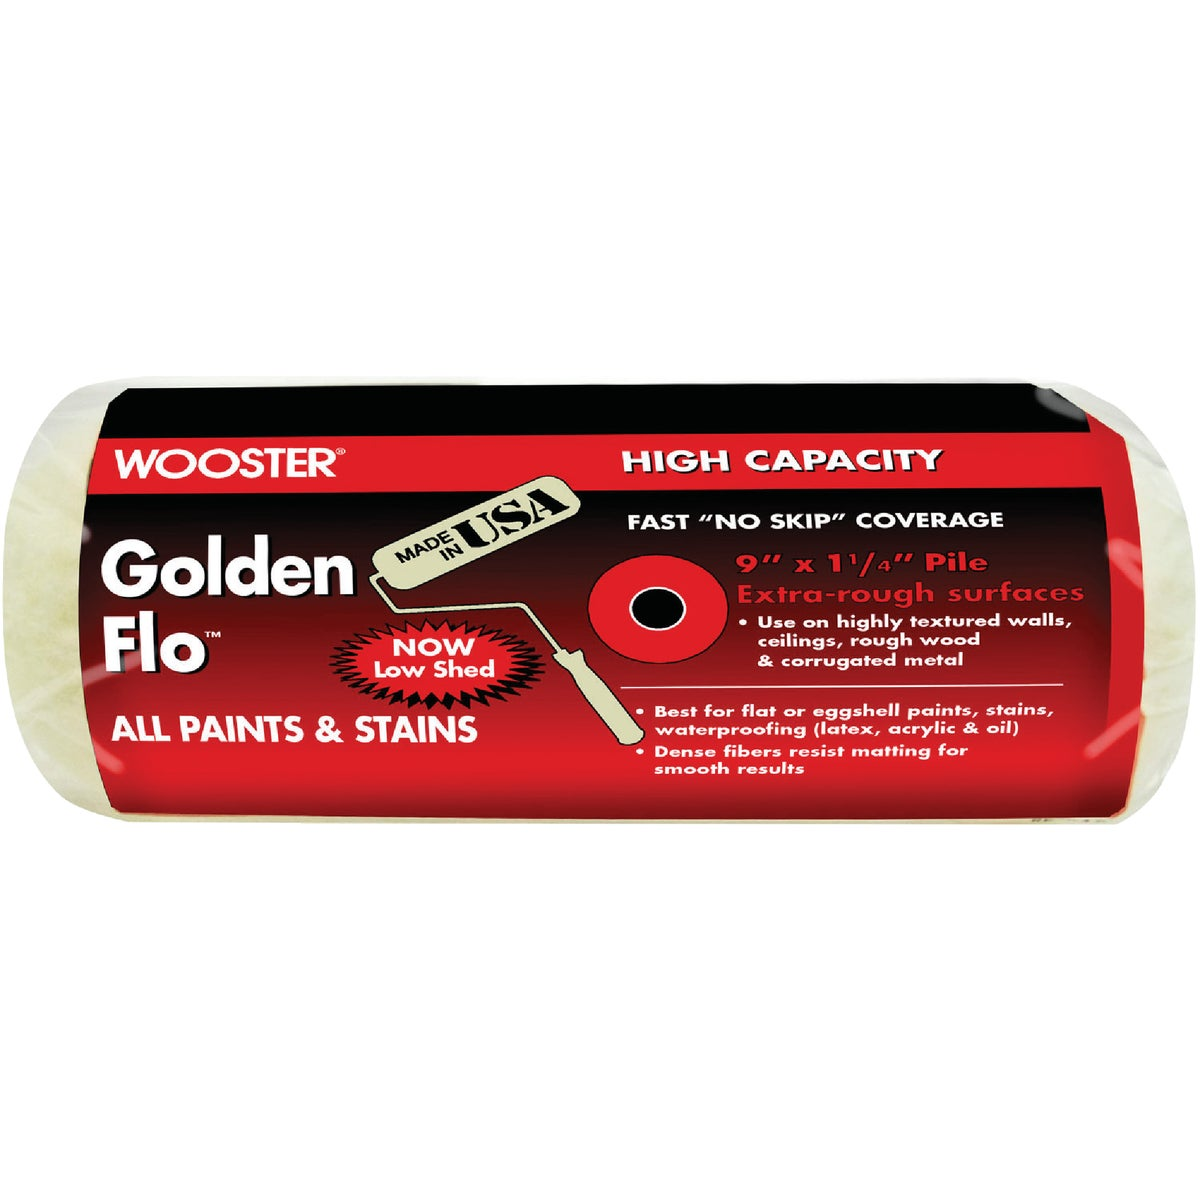 "9X1-1/4"" ROLLER COVER - RR664-9"" by Wooster Brush Co"